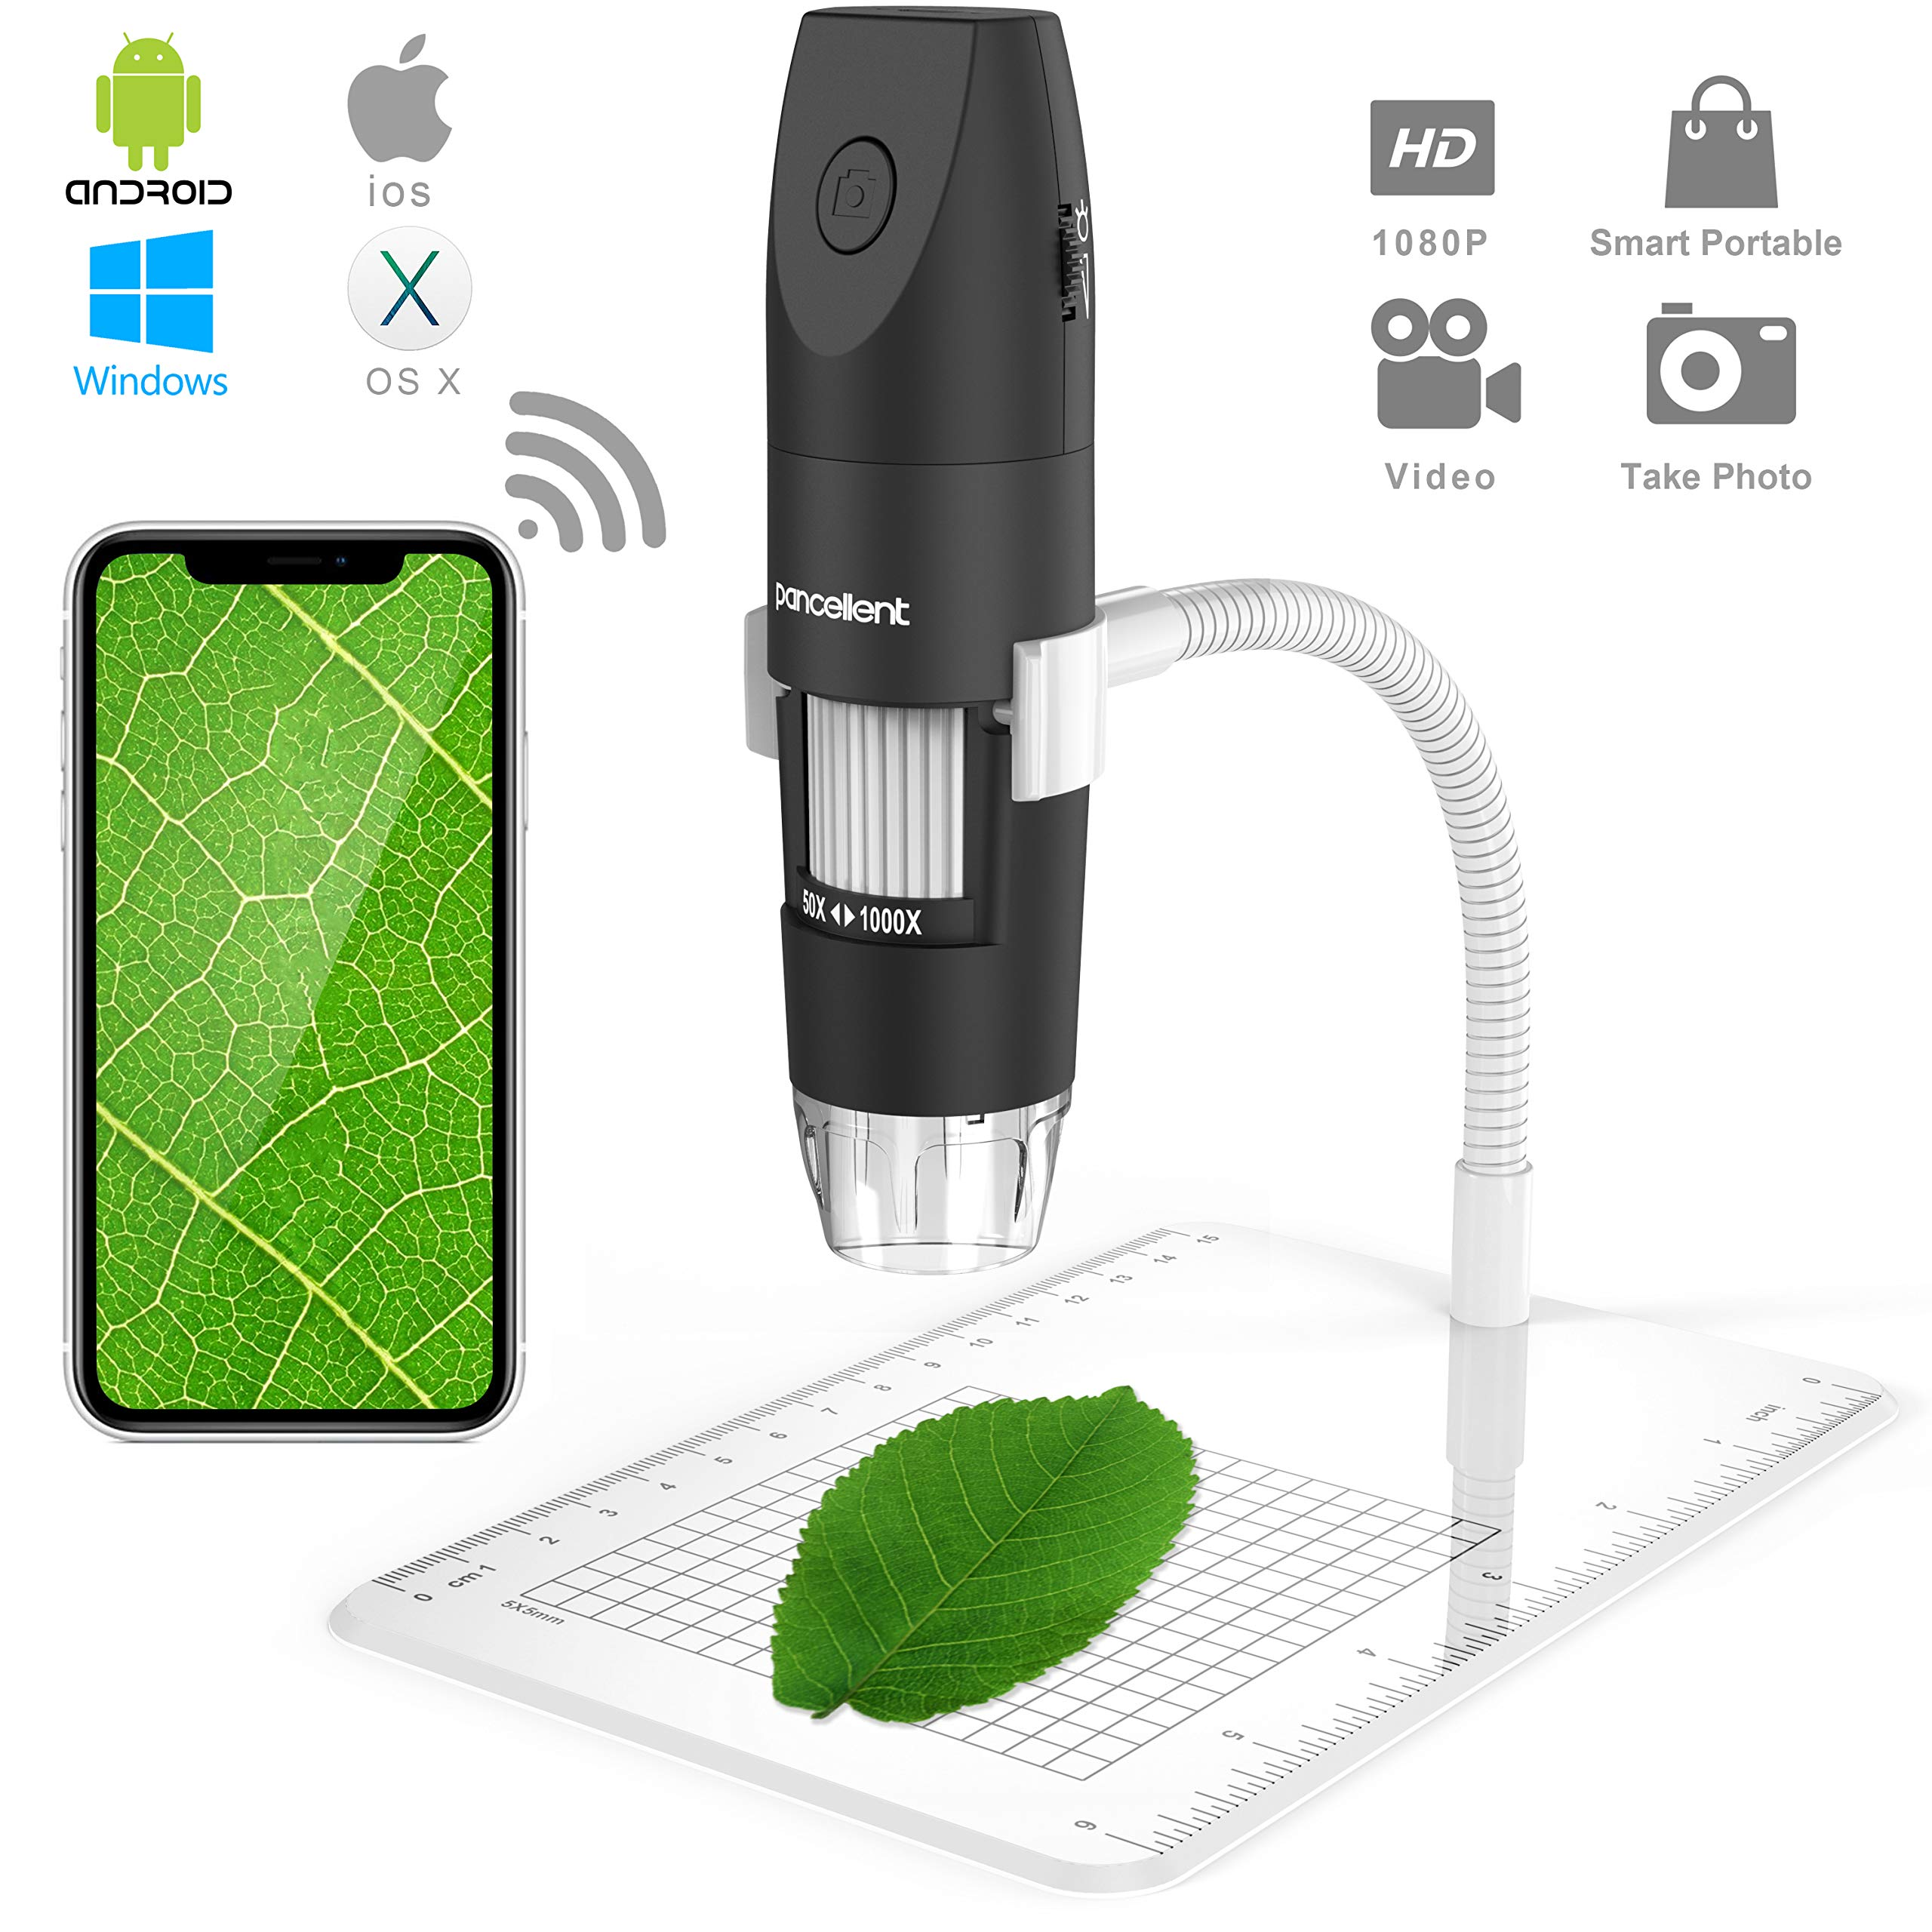 Wireless Digital Microscope, Pancellent 1080P 50X to 1000X Magnification Microscopy with 8 LED, USB Handheld Camera with Light Compatible for iPhone Android, iPad Windows Mac by Pancellent